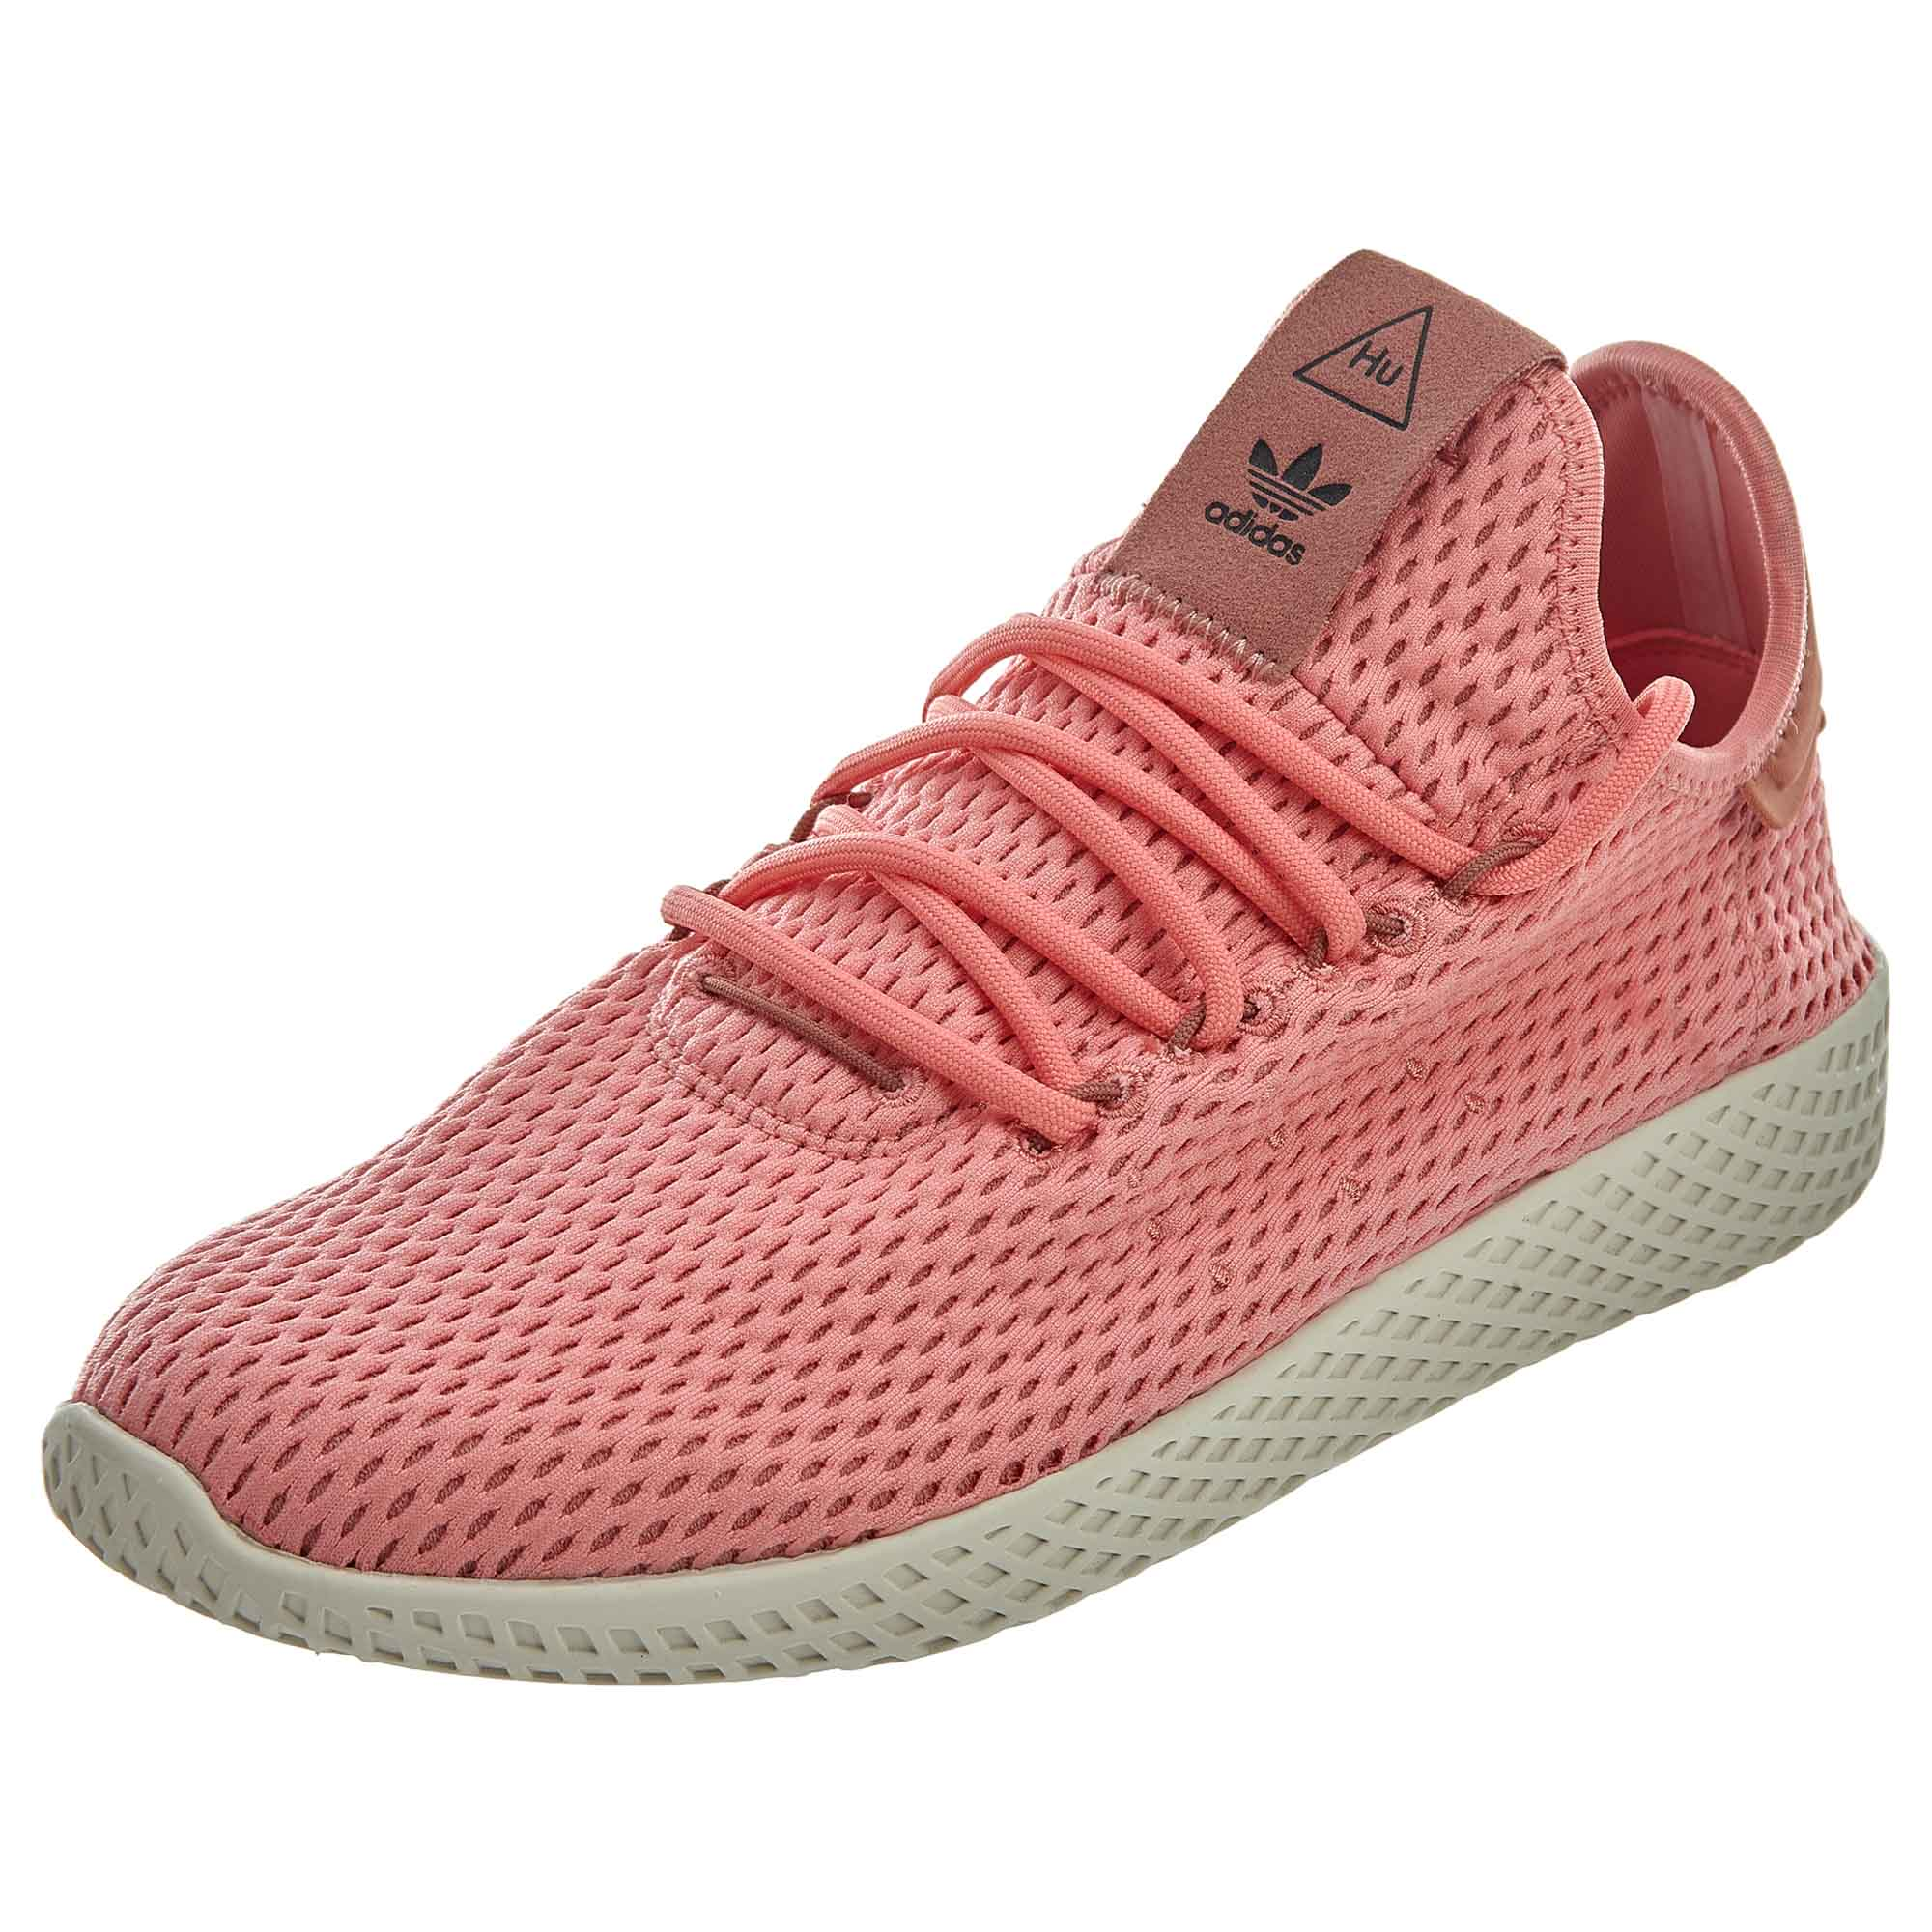 half off 6bd2c b6efb ... order adidas pw tennis hu mens style by8715 rose pink sneaker experts  34a14 7929d